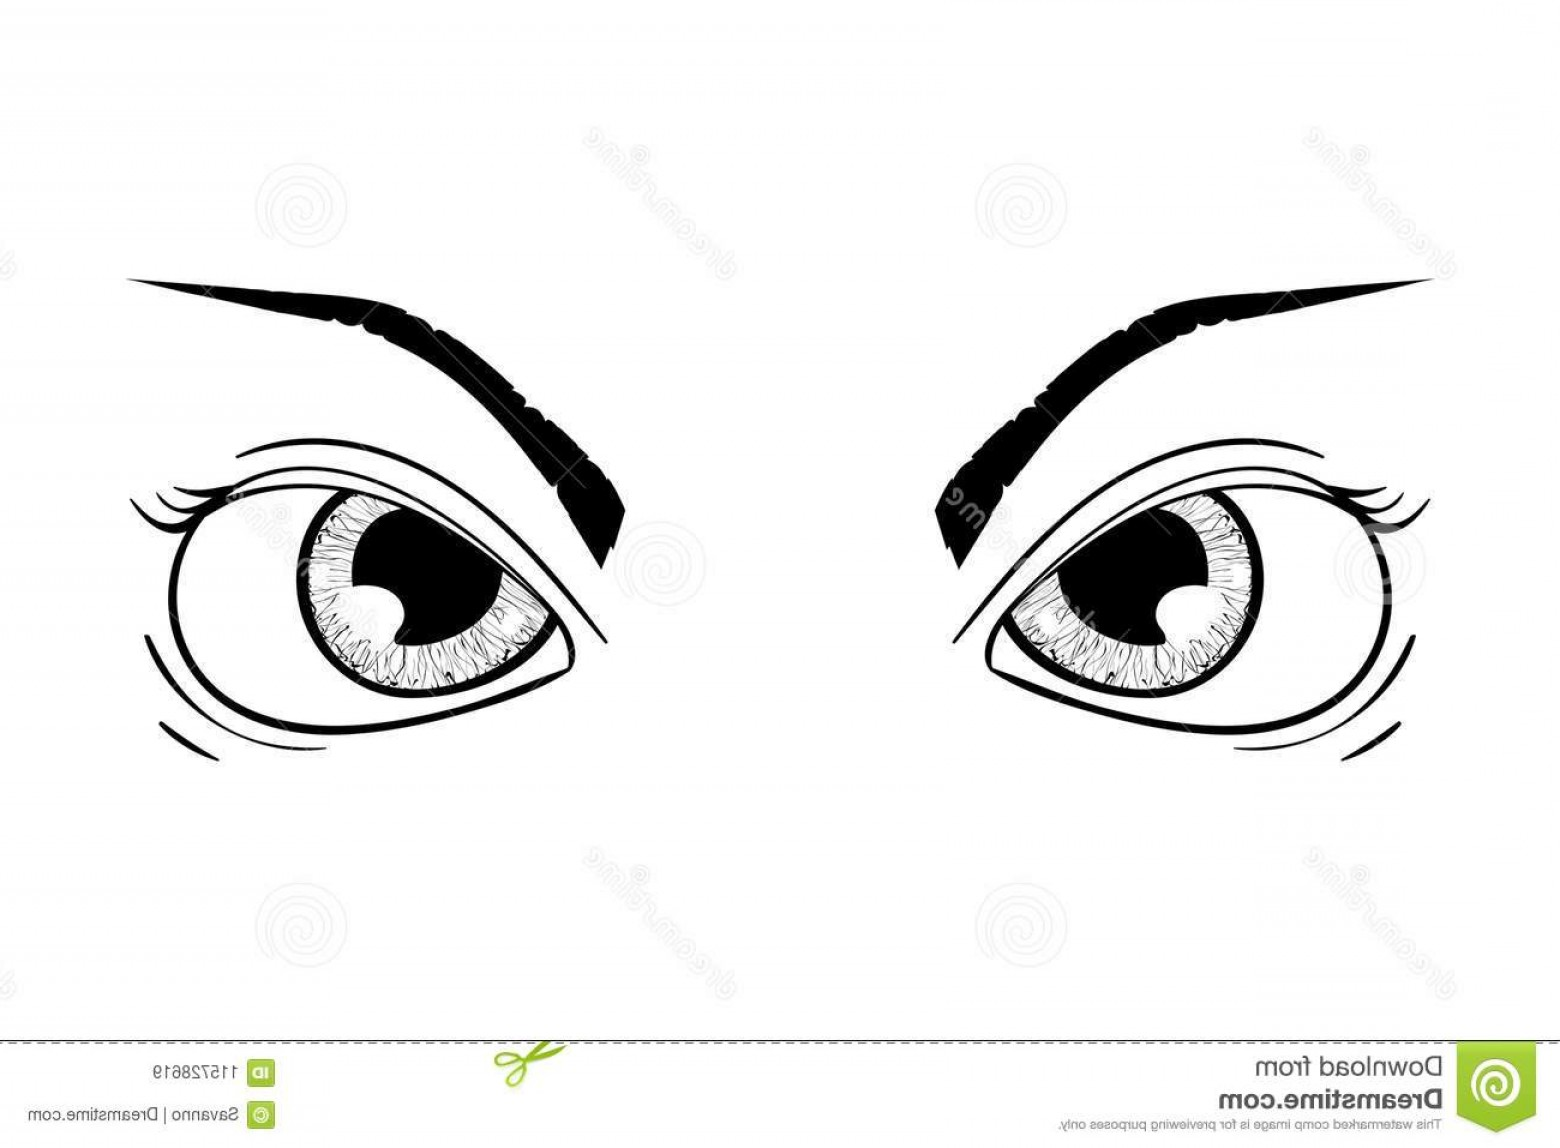 Angry Eyebrow Vector: Angry Eyes Hand Drawn Sketch Angry Eyes Hand Drawn Sketch Vector Illustration Isolated White Background Image